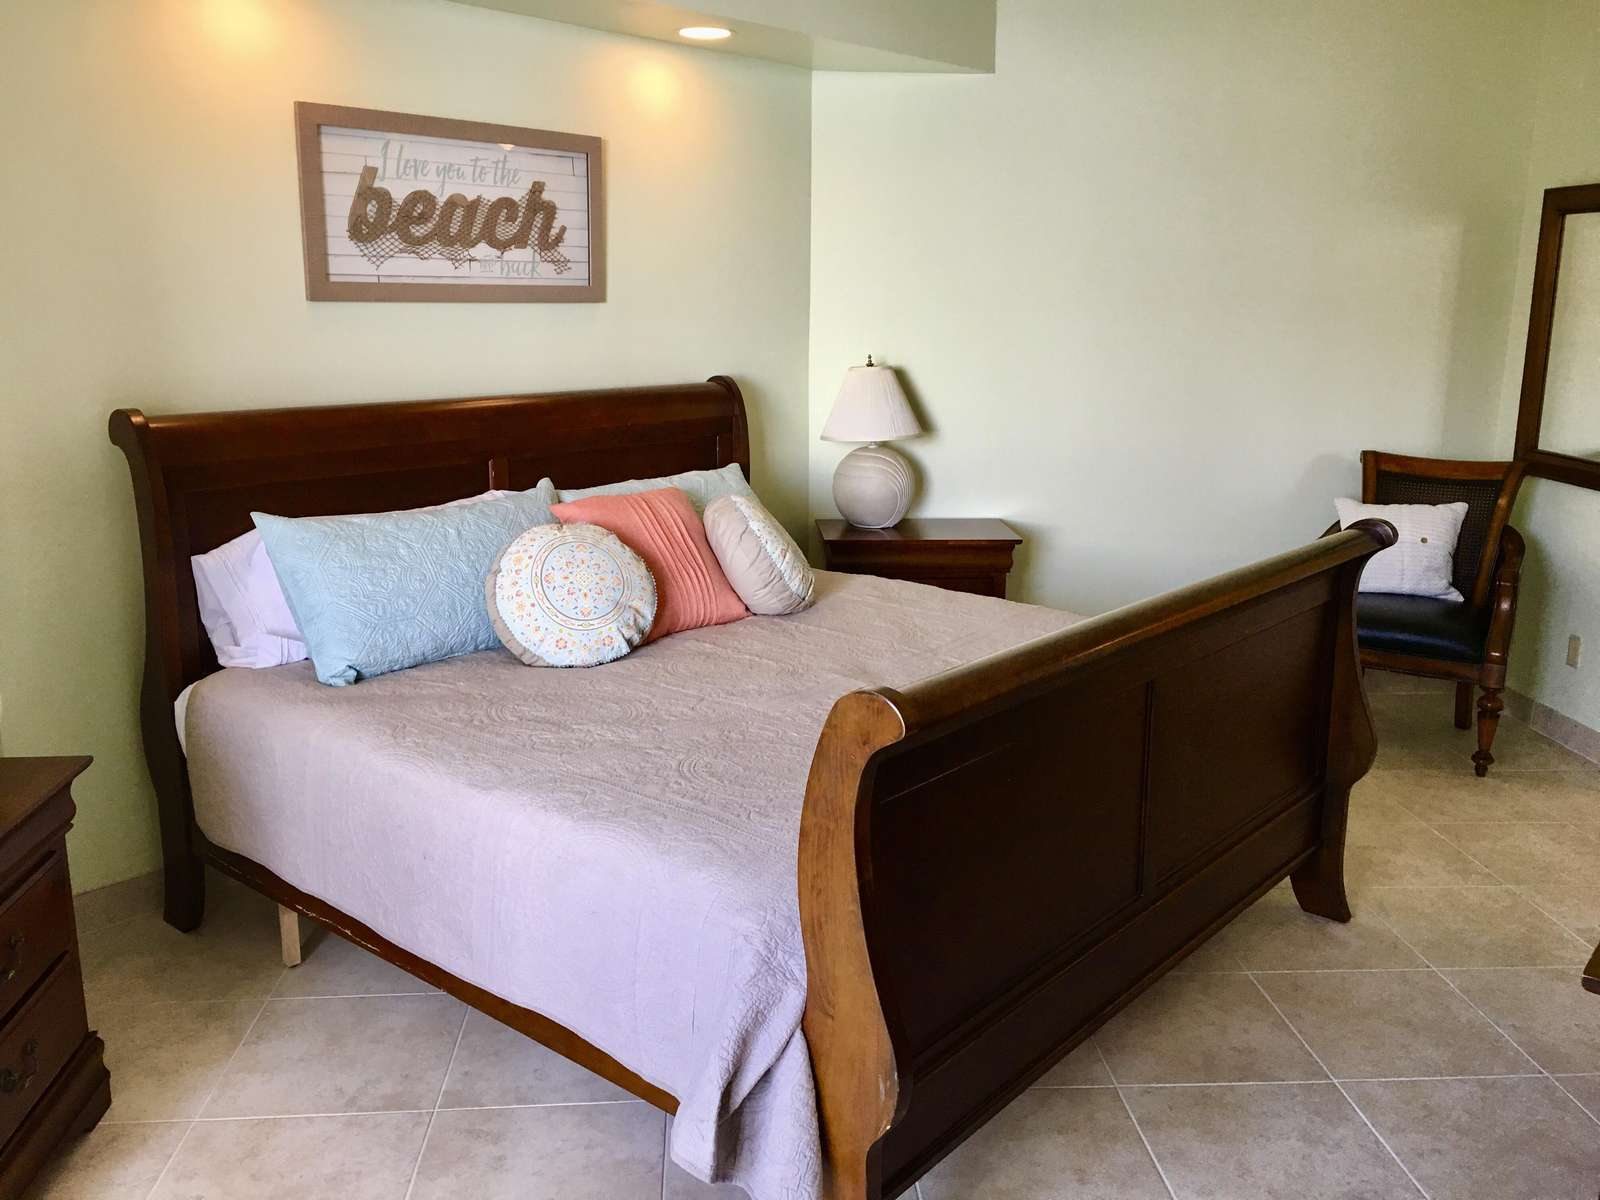 The master bedroom features a king sized bed.